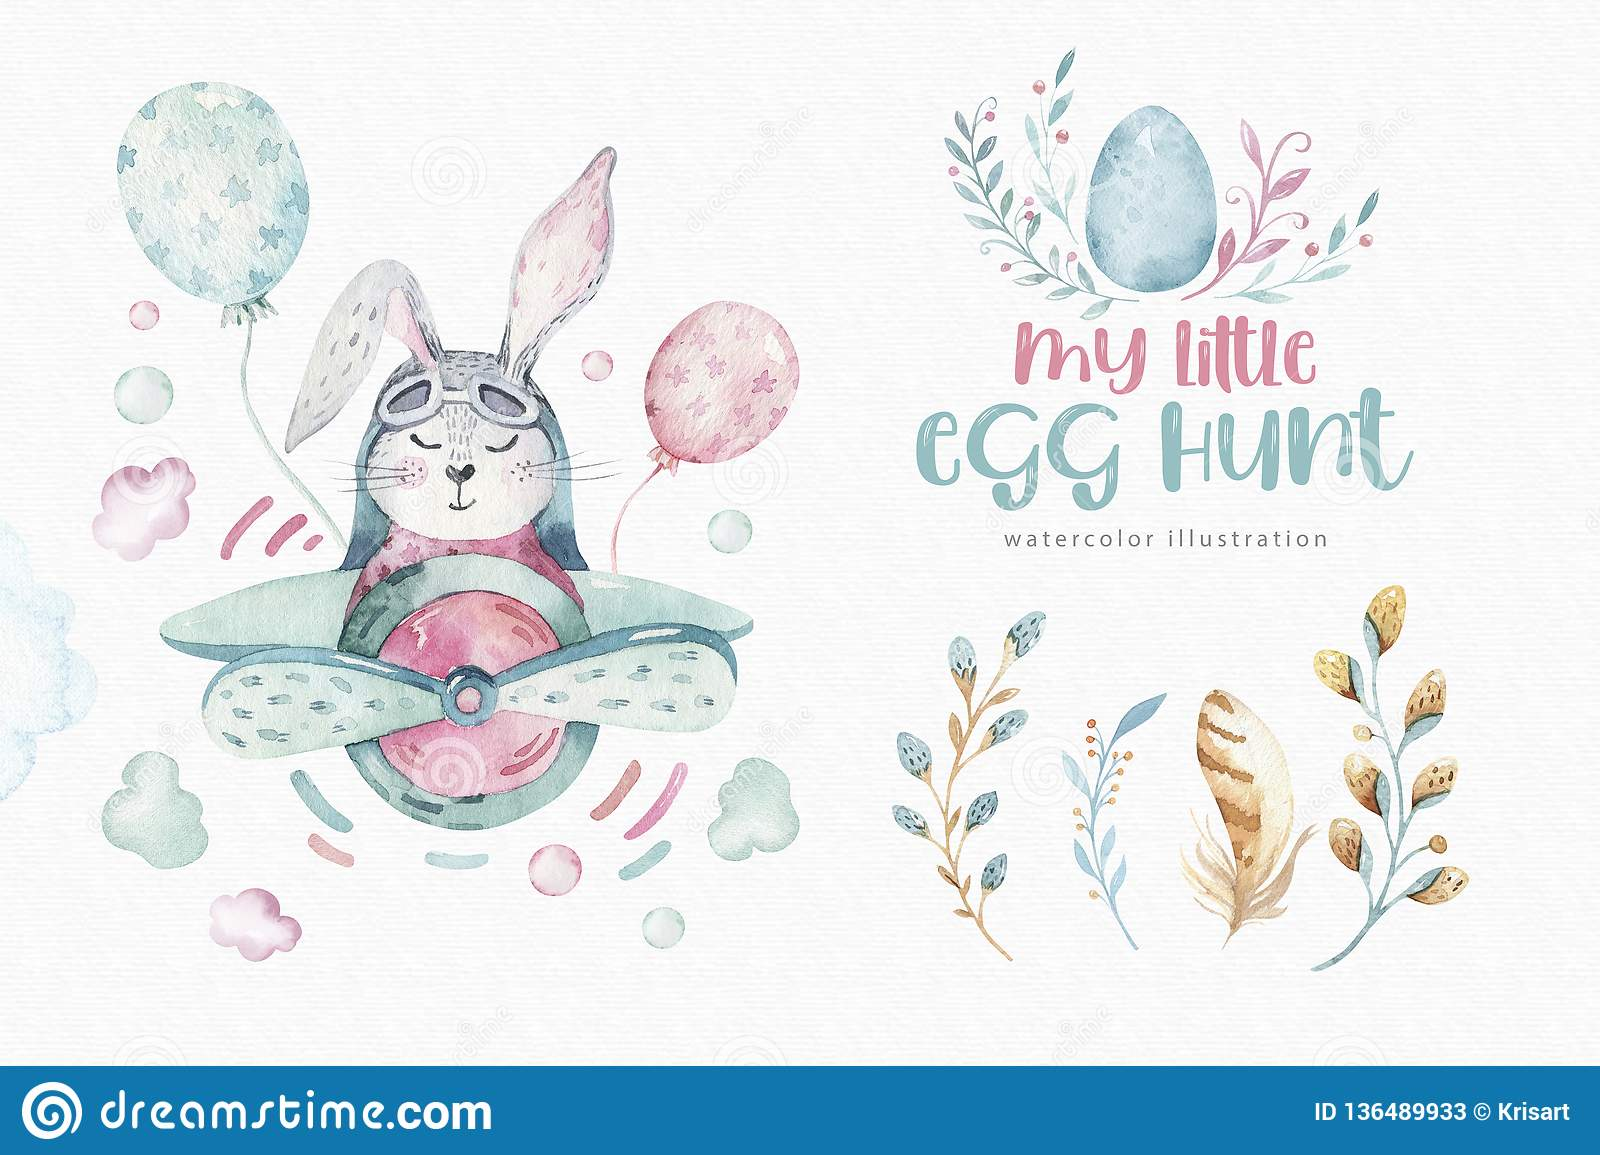 Hand Drawing Fly Cute Easter Pilot Bunny Watercolor Cartoon Bunnies With Airplane In The Sky Turquoise Watercolour Stock Illustration Illustration Of Colorful Little 136489933